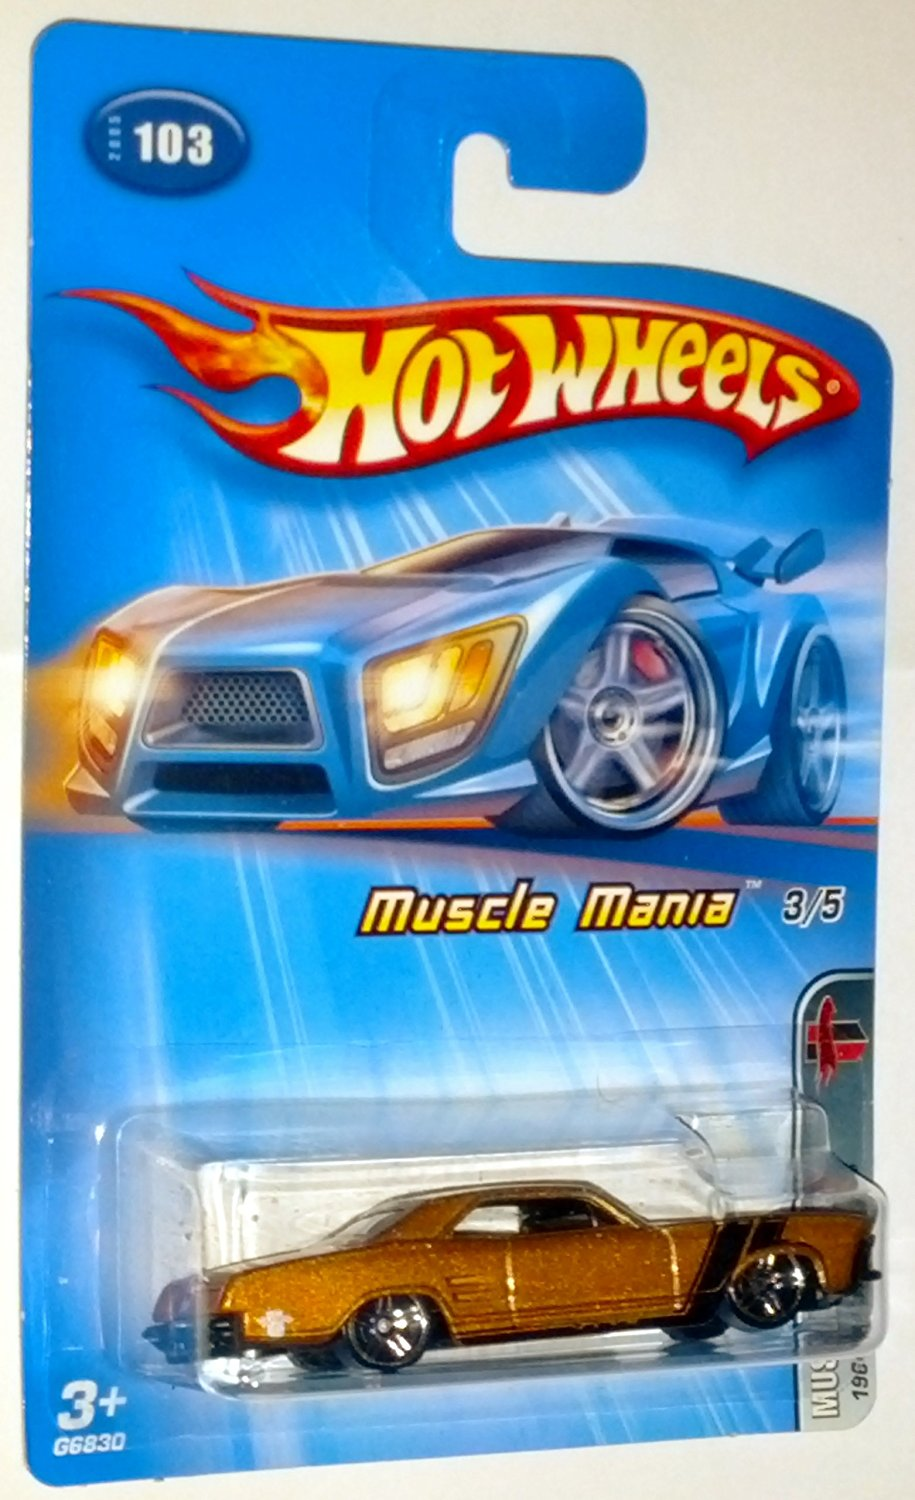 Hot Wheels 2005 Muscle Mania 3/5 1964 Buick Rivera #103 1:64 Scale Die-Cast Vehicle